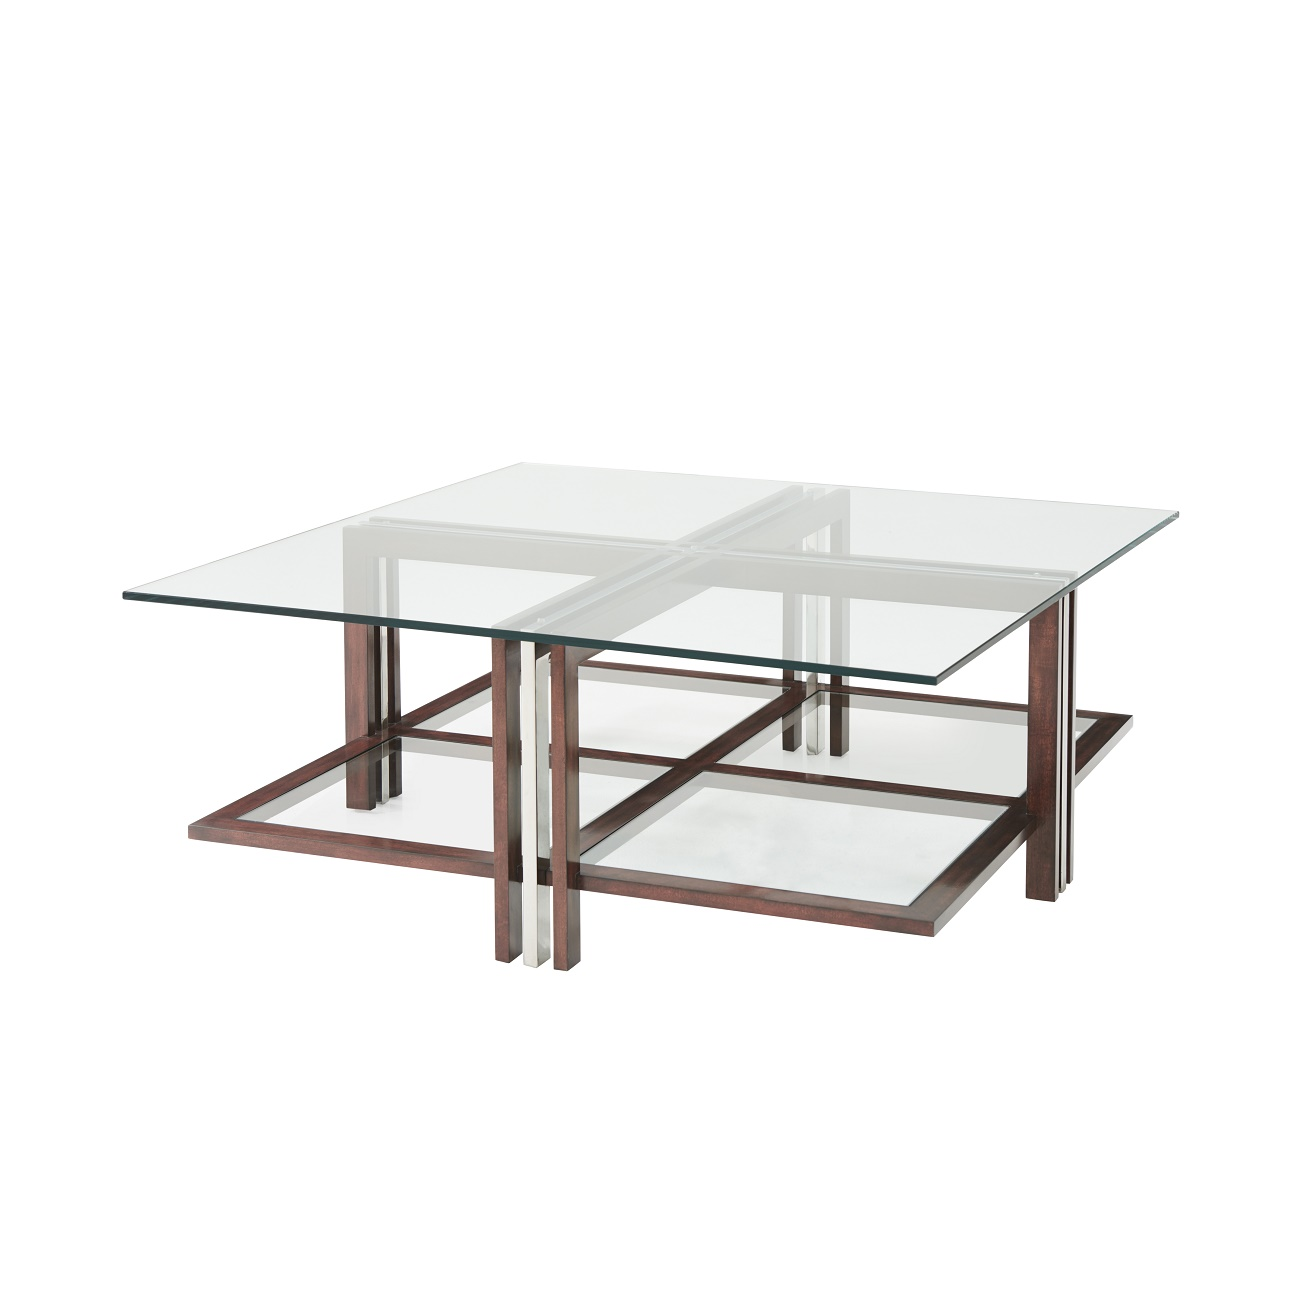 KENO5119 Doubles Cocktail Table Theodore Alexander